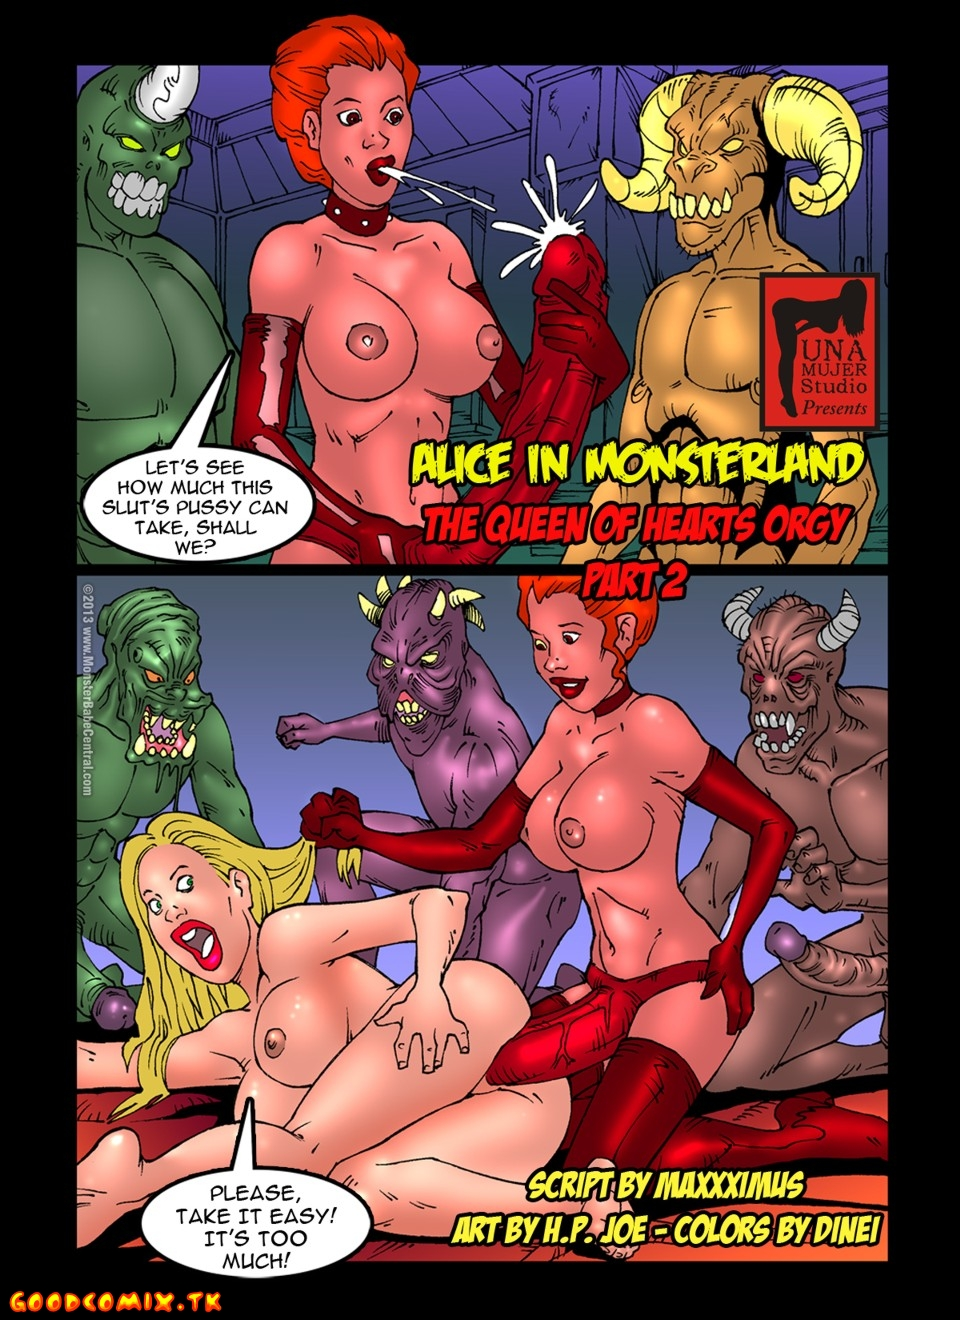 Goodcomix.tk Alice in Wonderland - [MonsterBabeCentral] - Alice in Monsterland 08 - The Queen Of Hearts Orgy Part 2